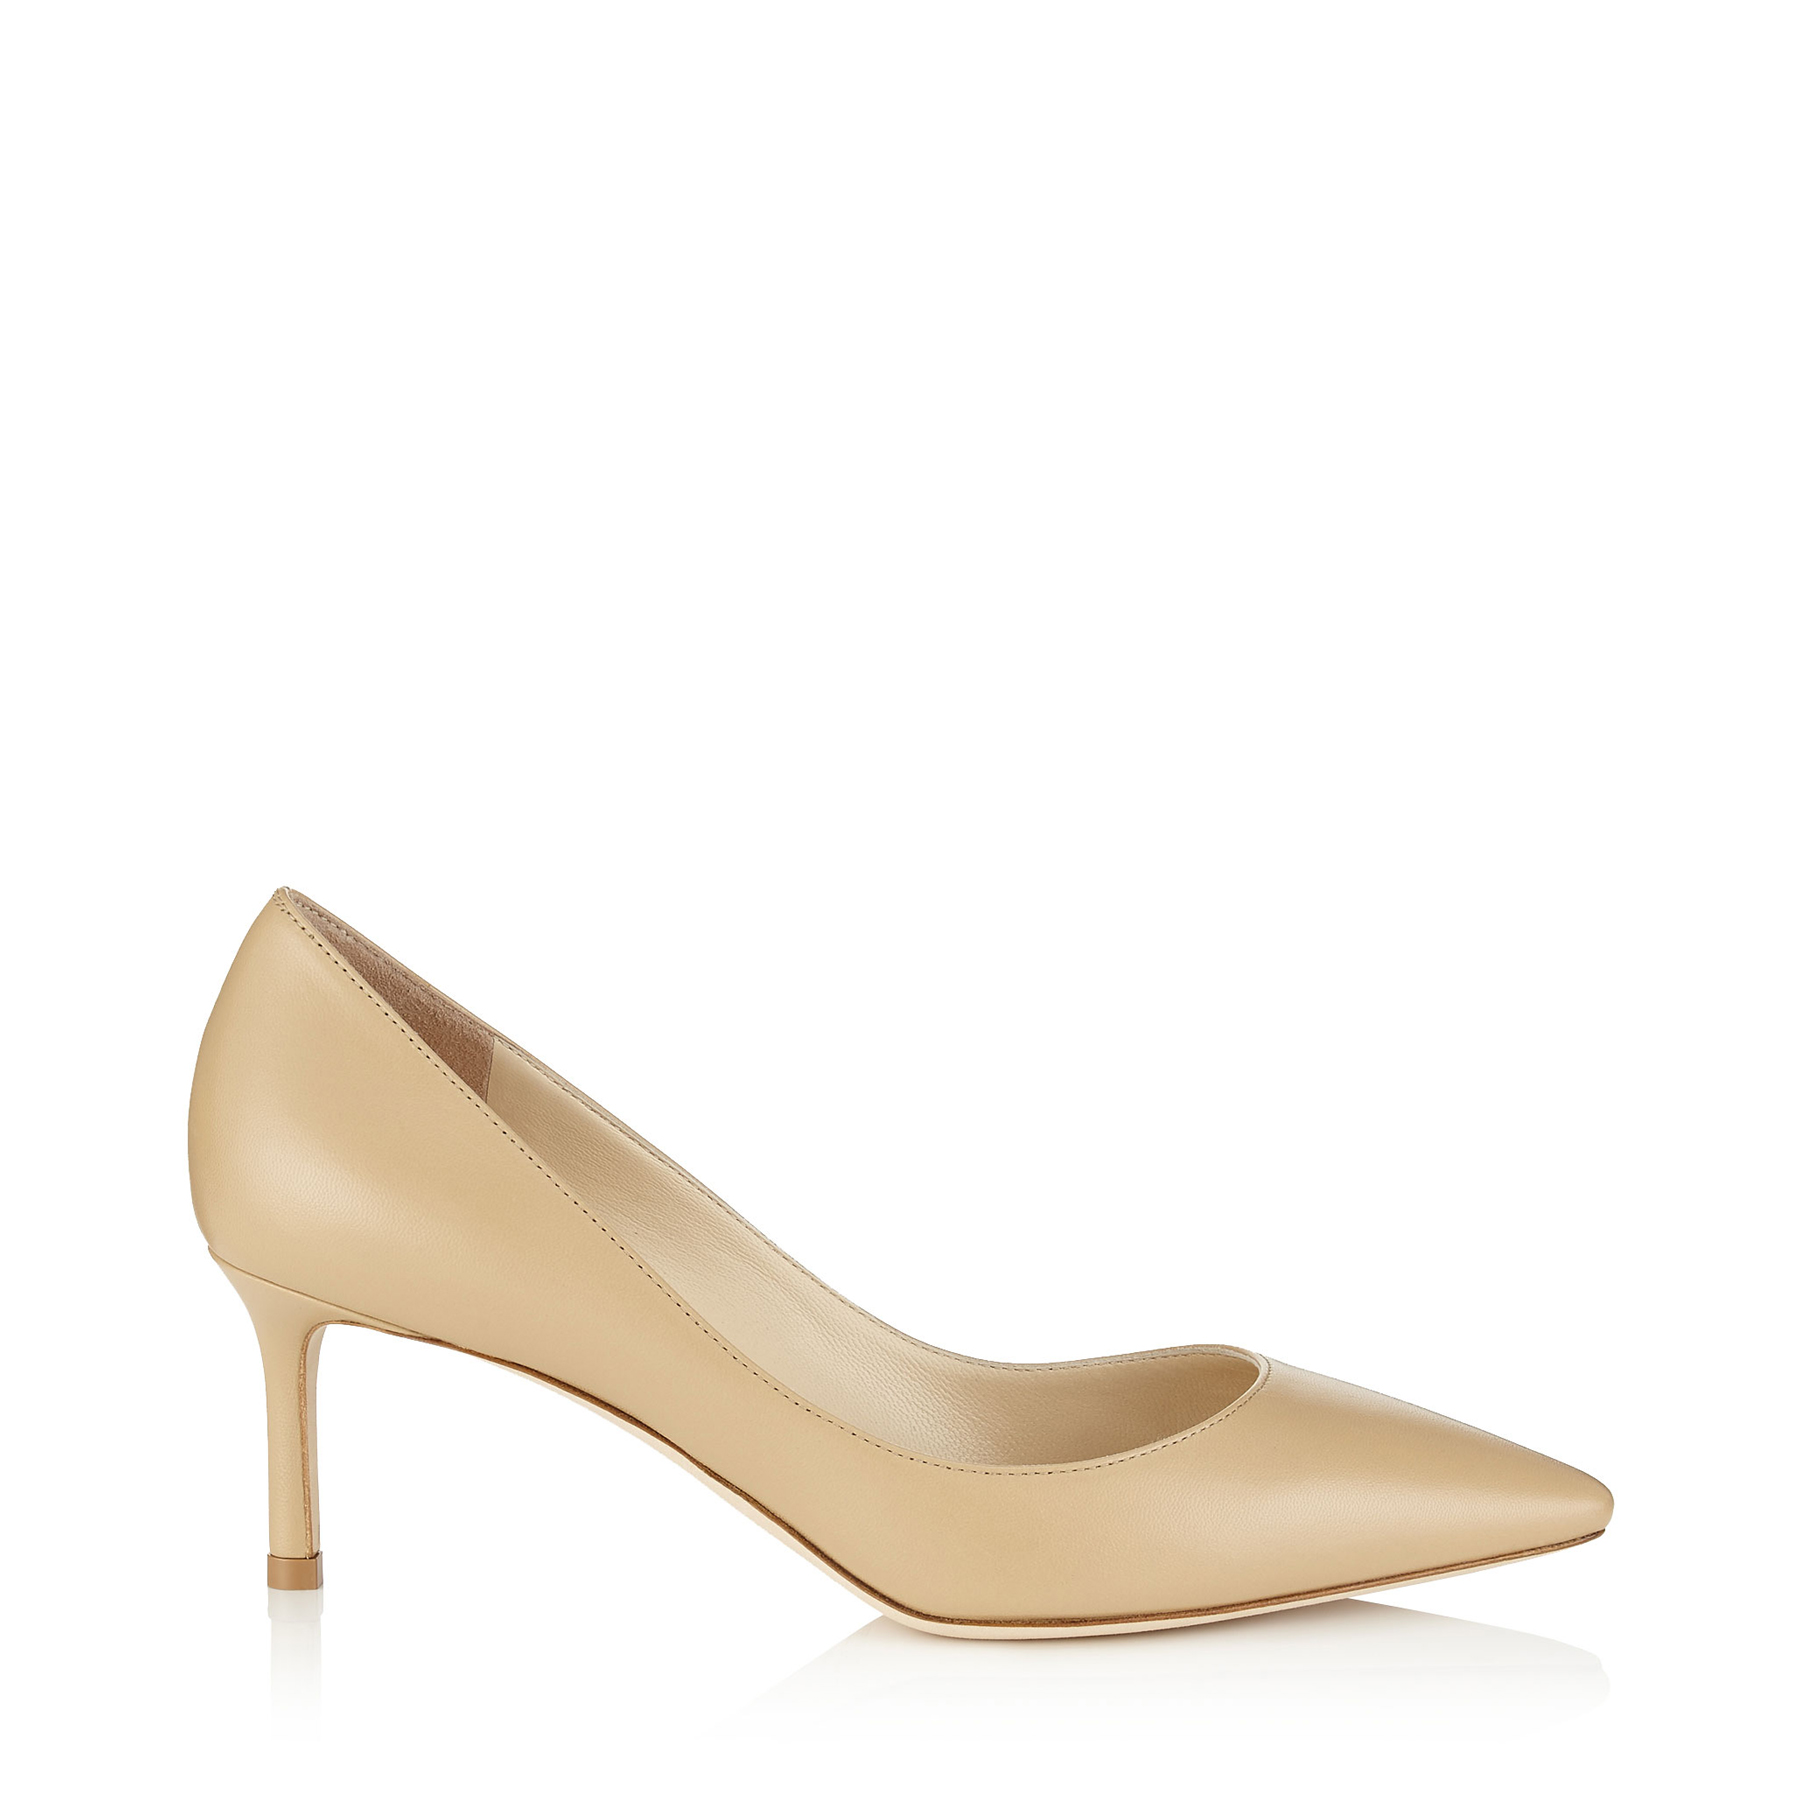 ROMY 60 Nude Kid Leather Pointy Toe Pumps by Jimmy Choo